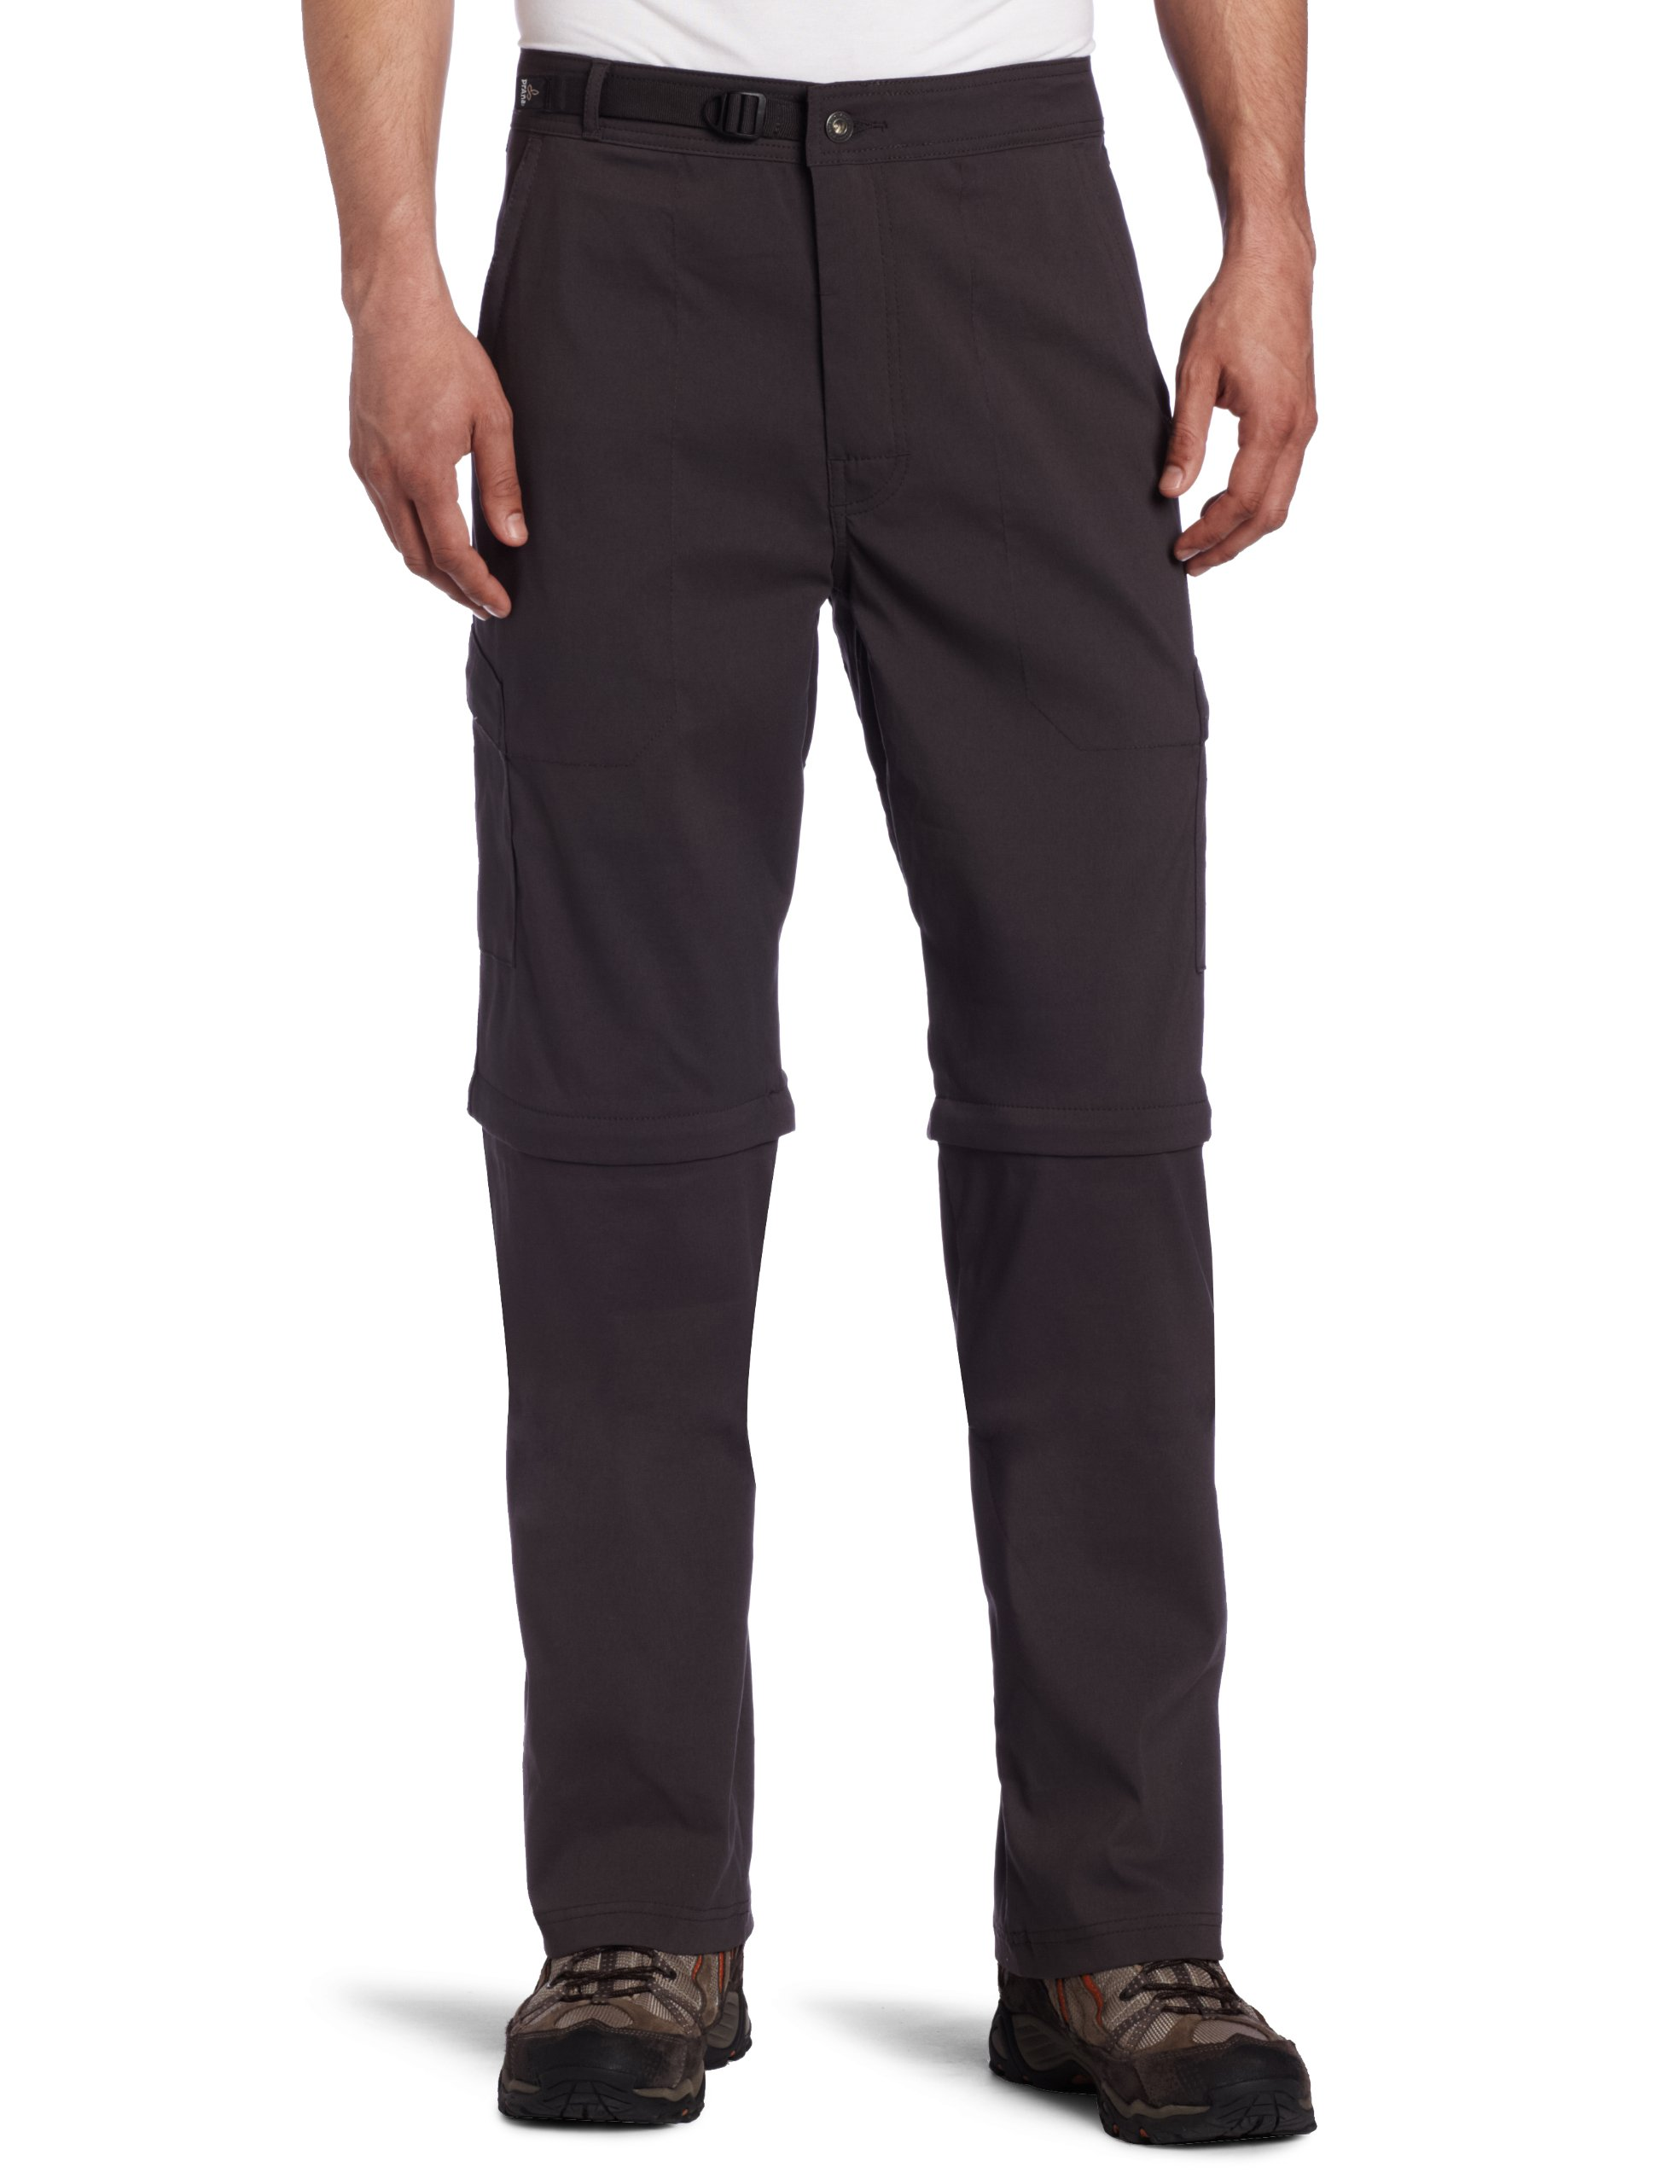 prAna Men's Stretch Zion 34-Inch Convertible Pant (Charcoal, X-Small)